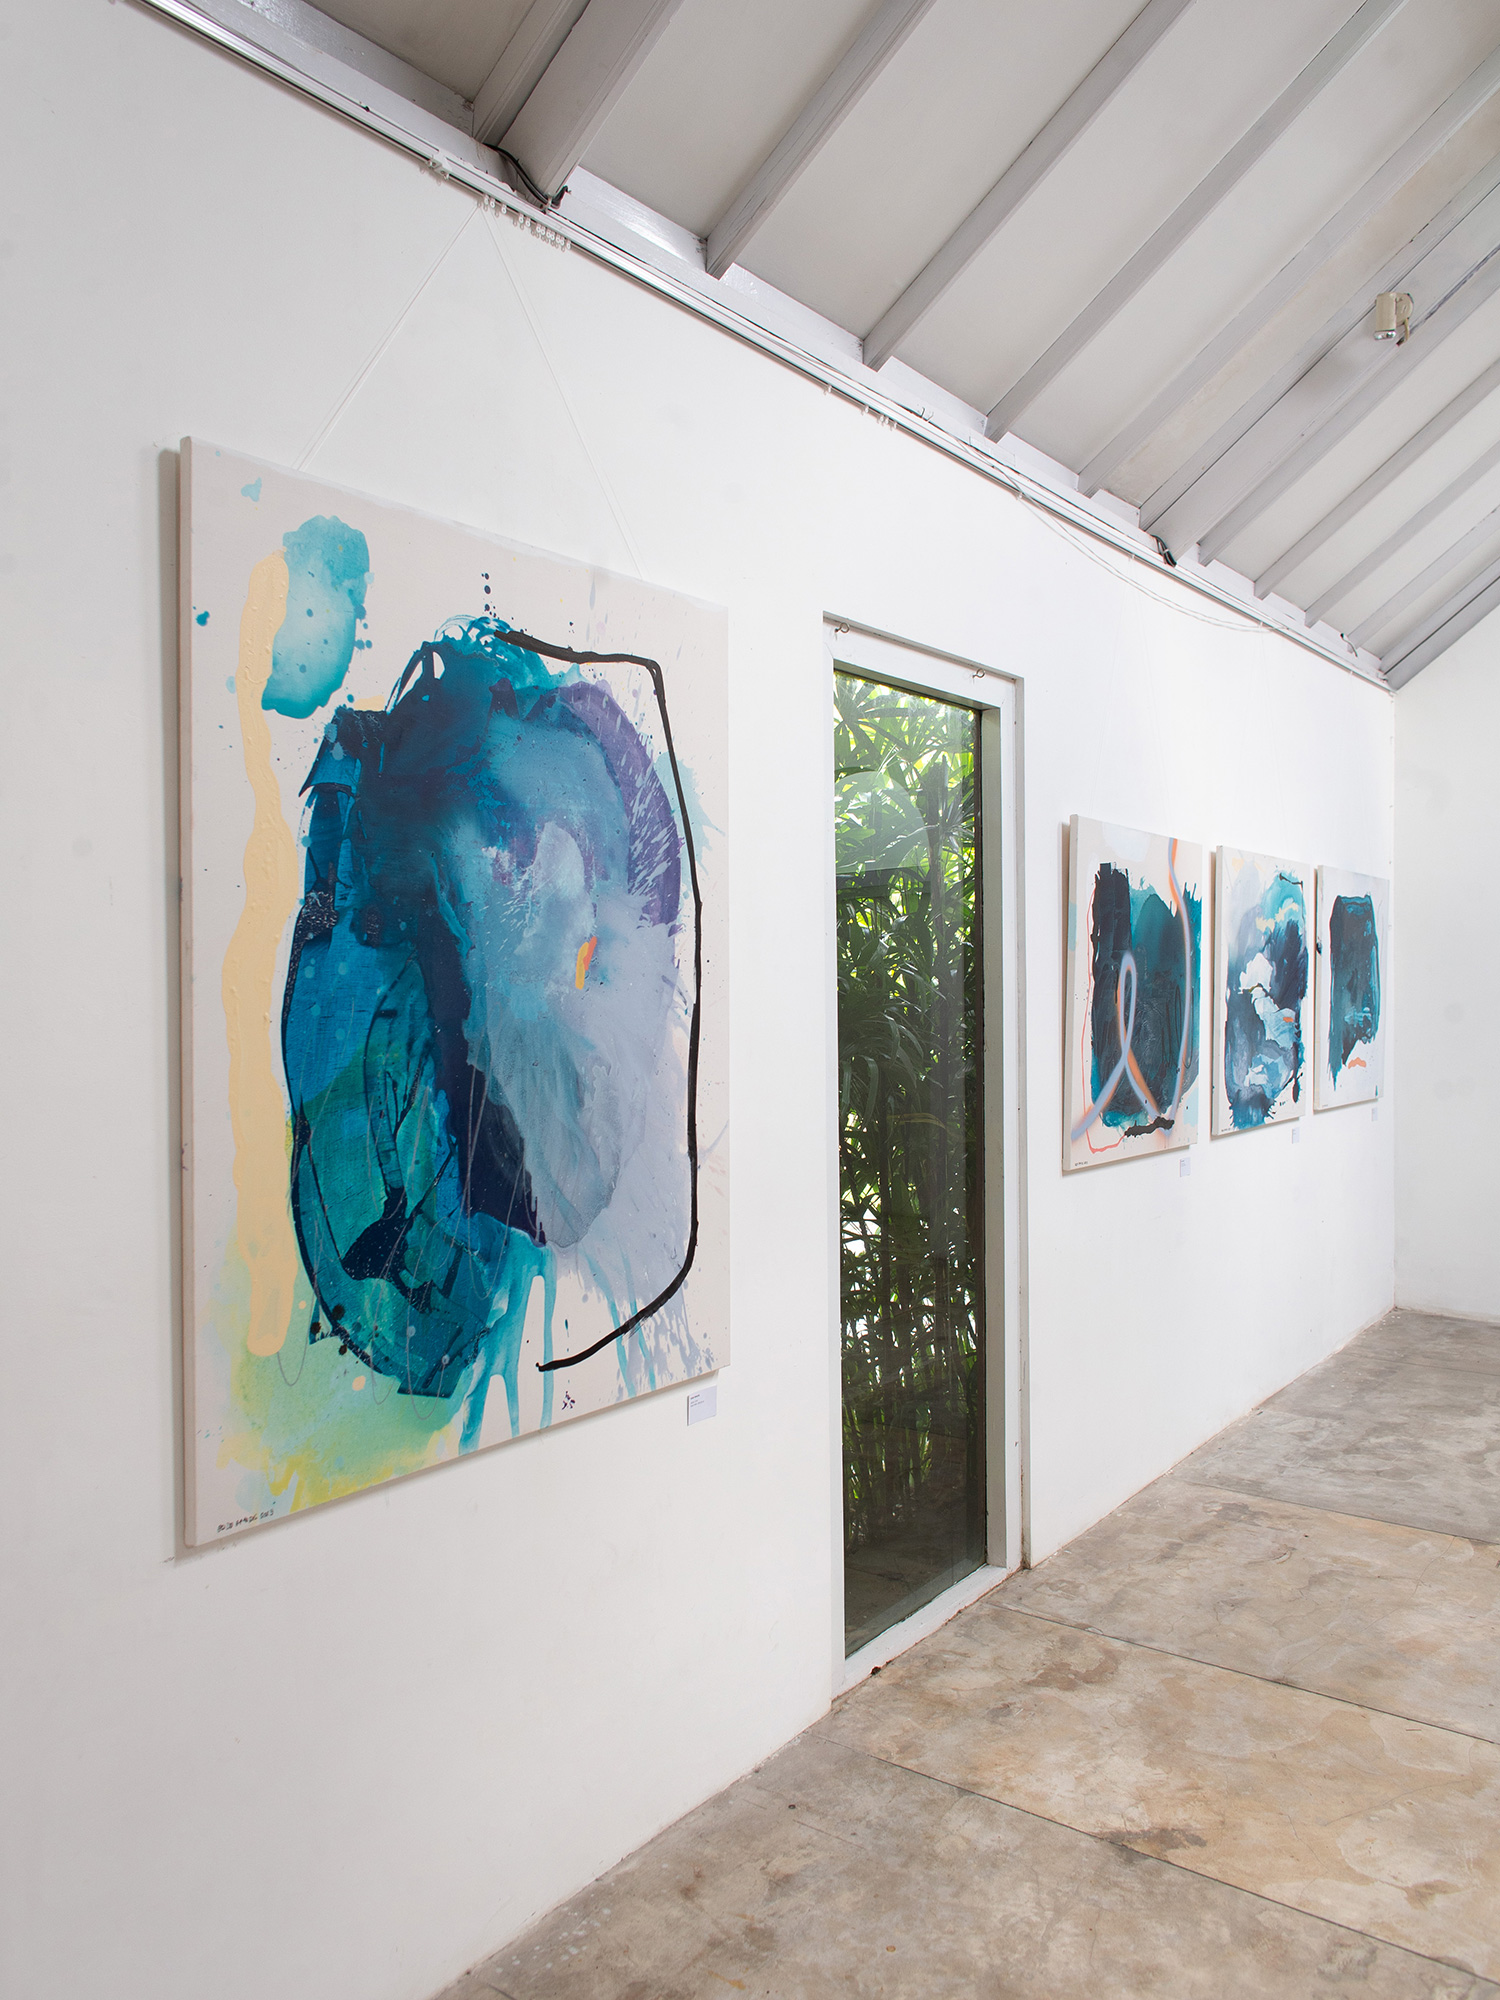 Abstract artworks by abstract expressionist painter Ordo Amoris during her exhibition called wu-wei in Ubud, Bali